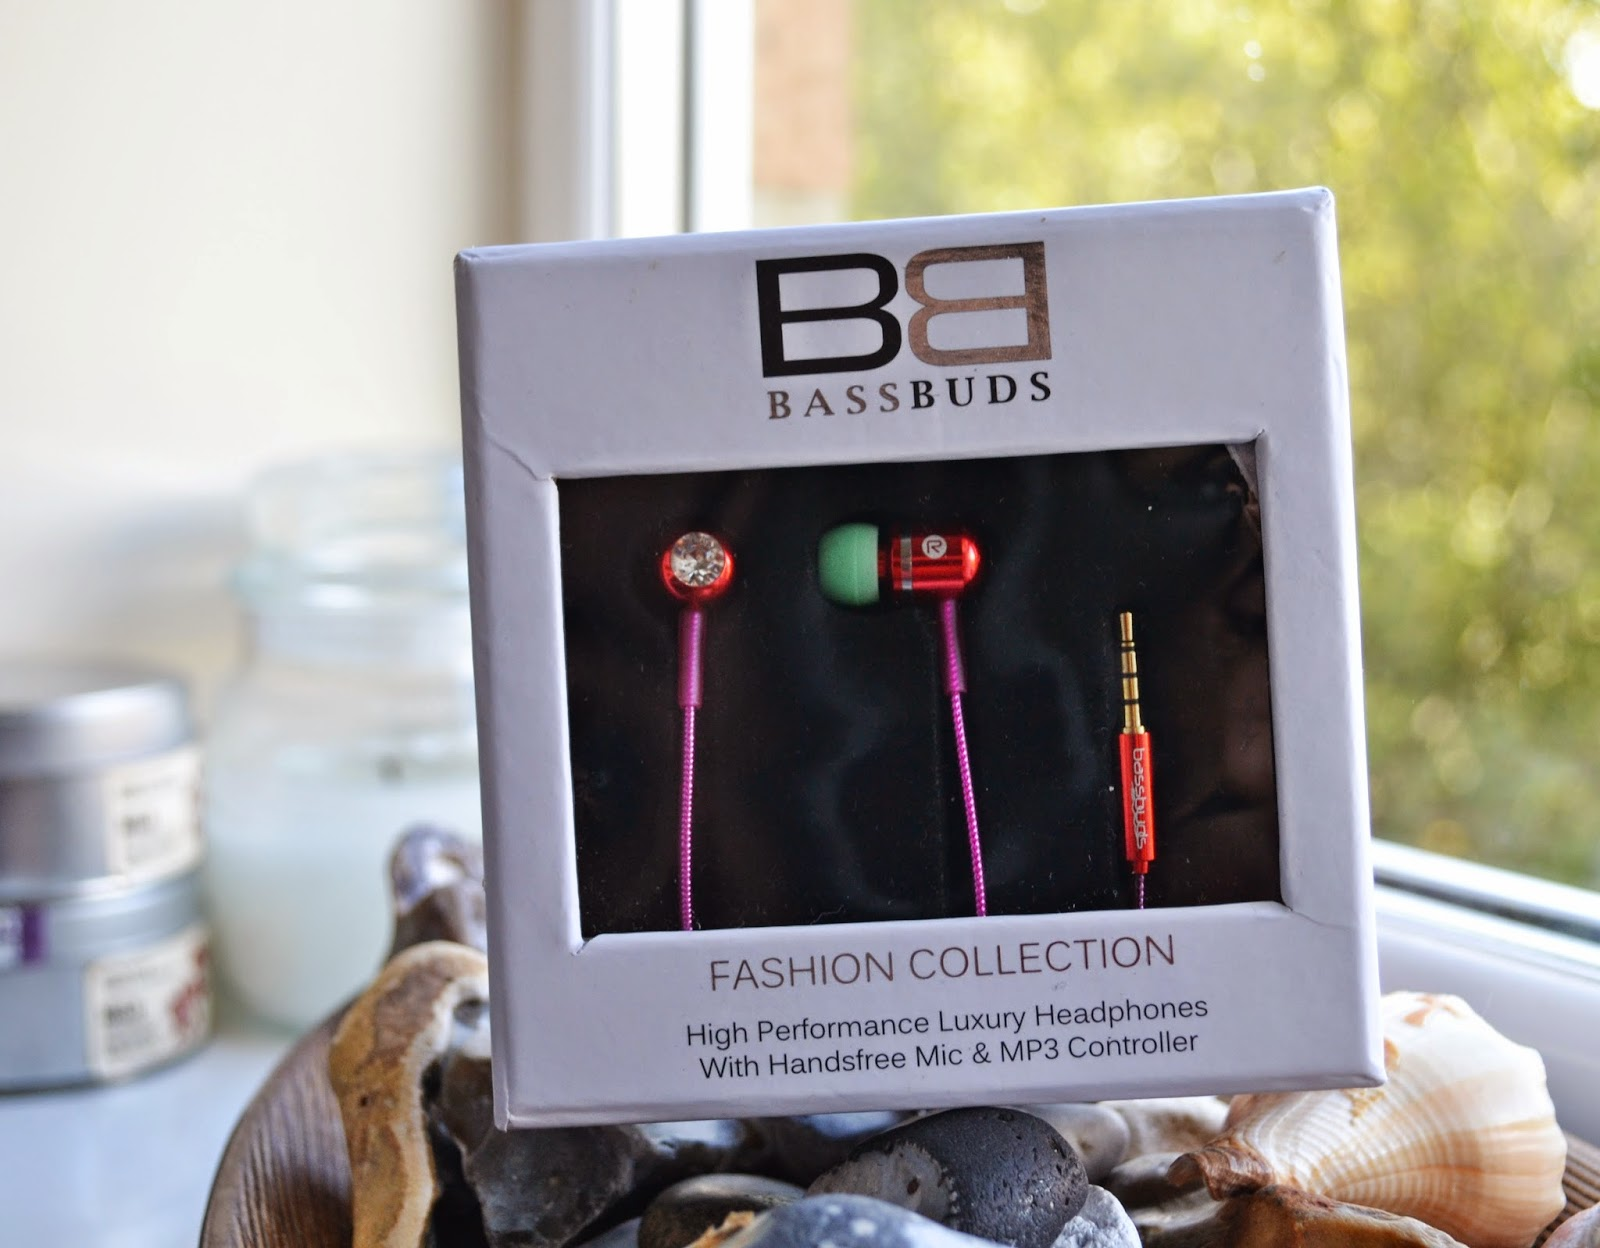 BassBuds Fashion Collection Headphones in Harmony - Aspiring Londoner